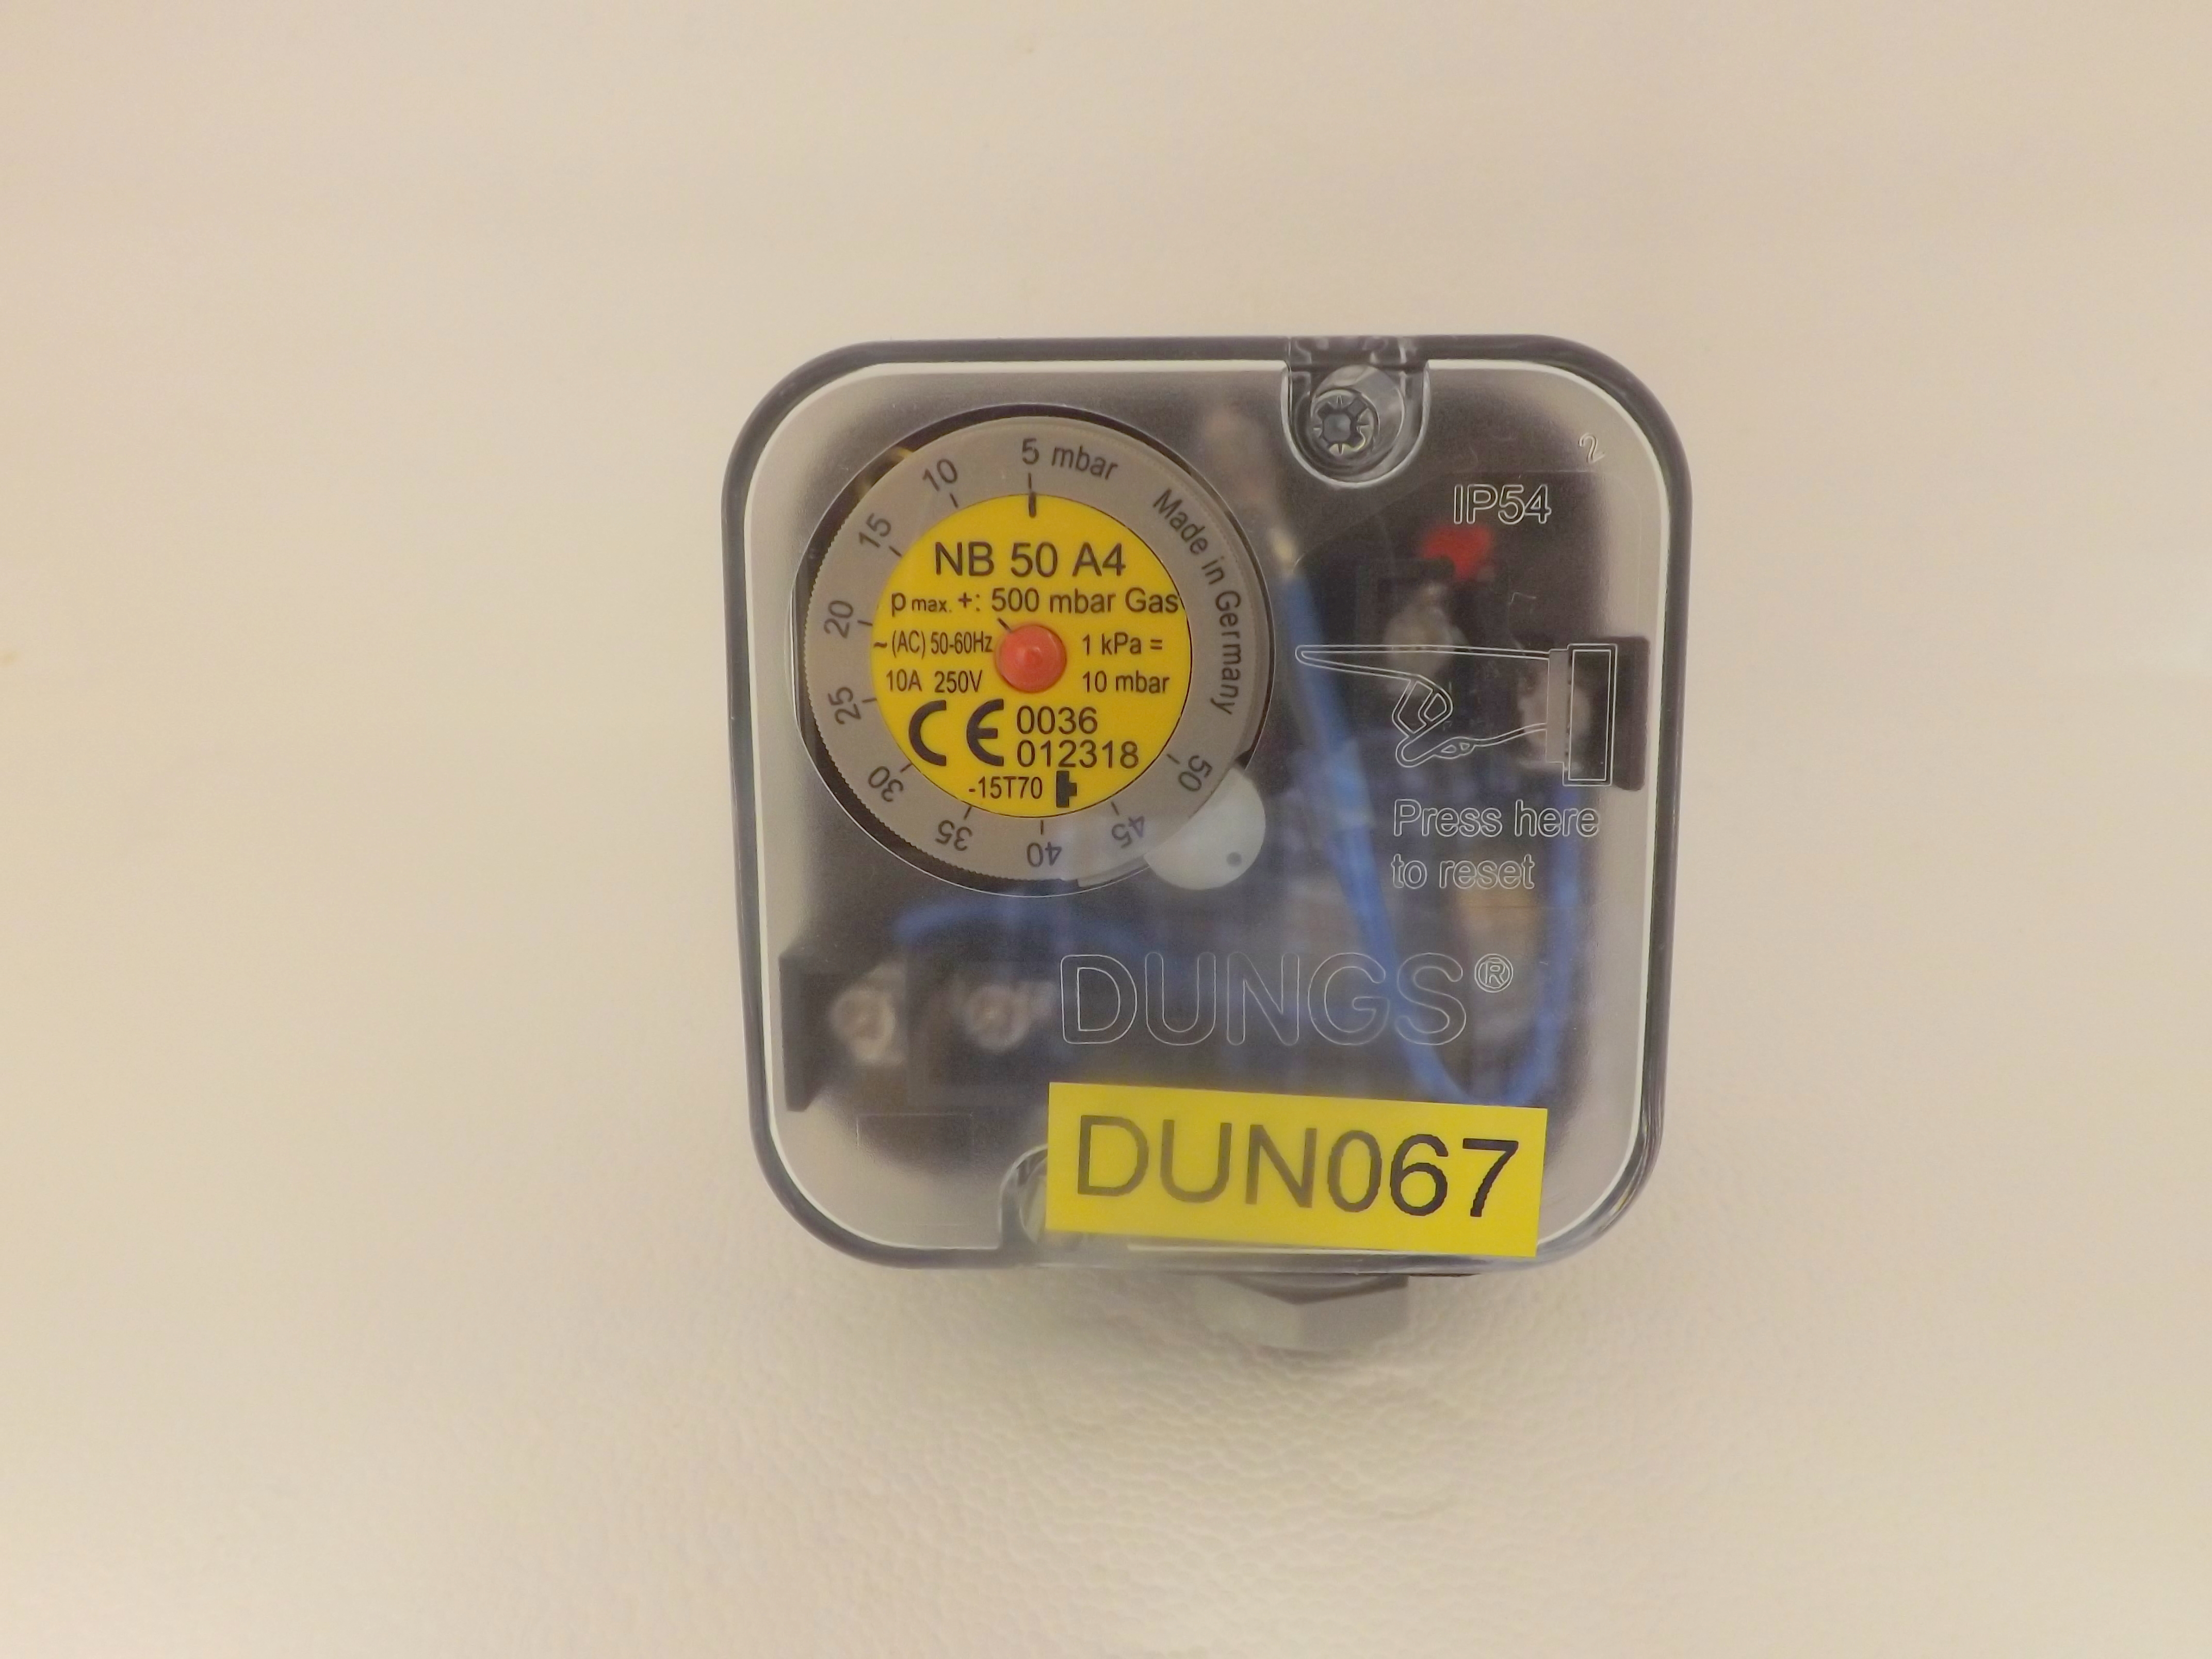 Dungs NB50 A4 2 5-50 mbar Pressure Switch 210 534